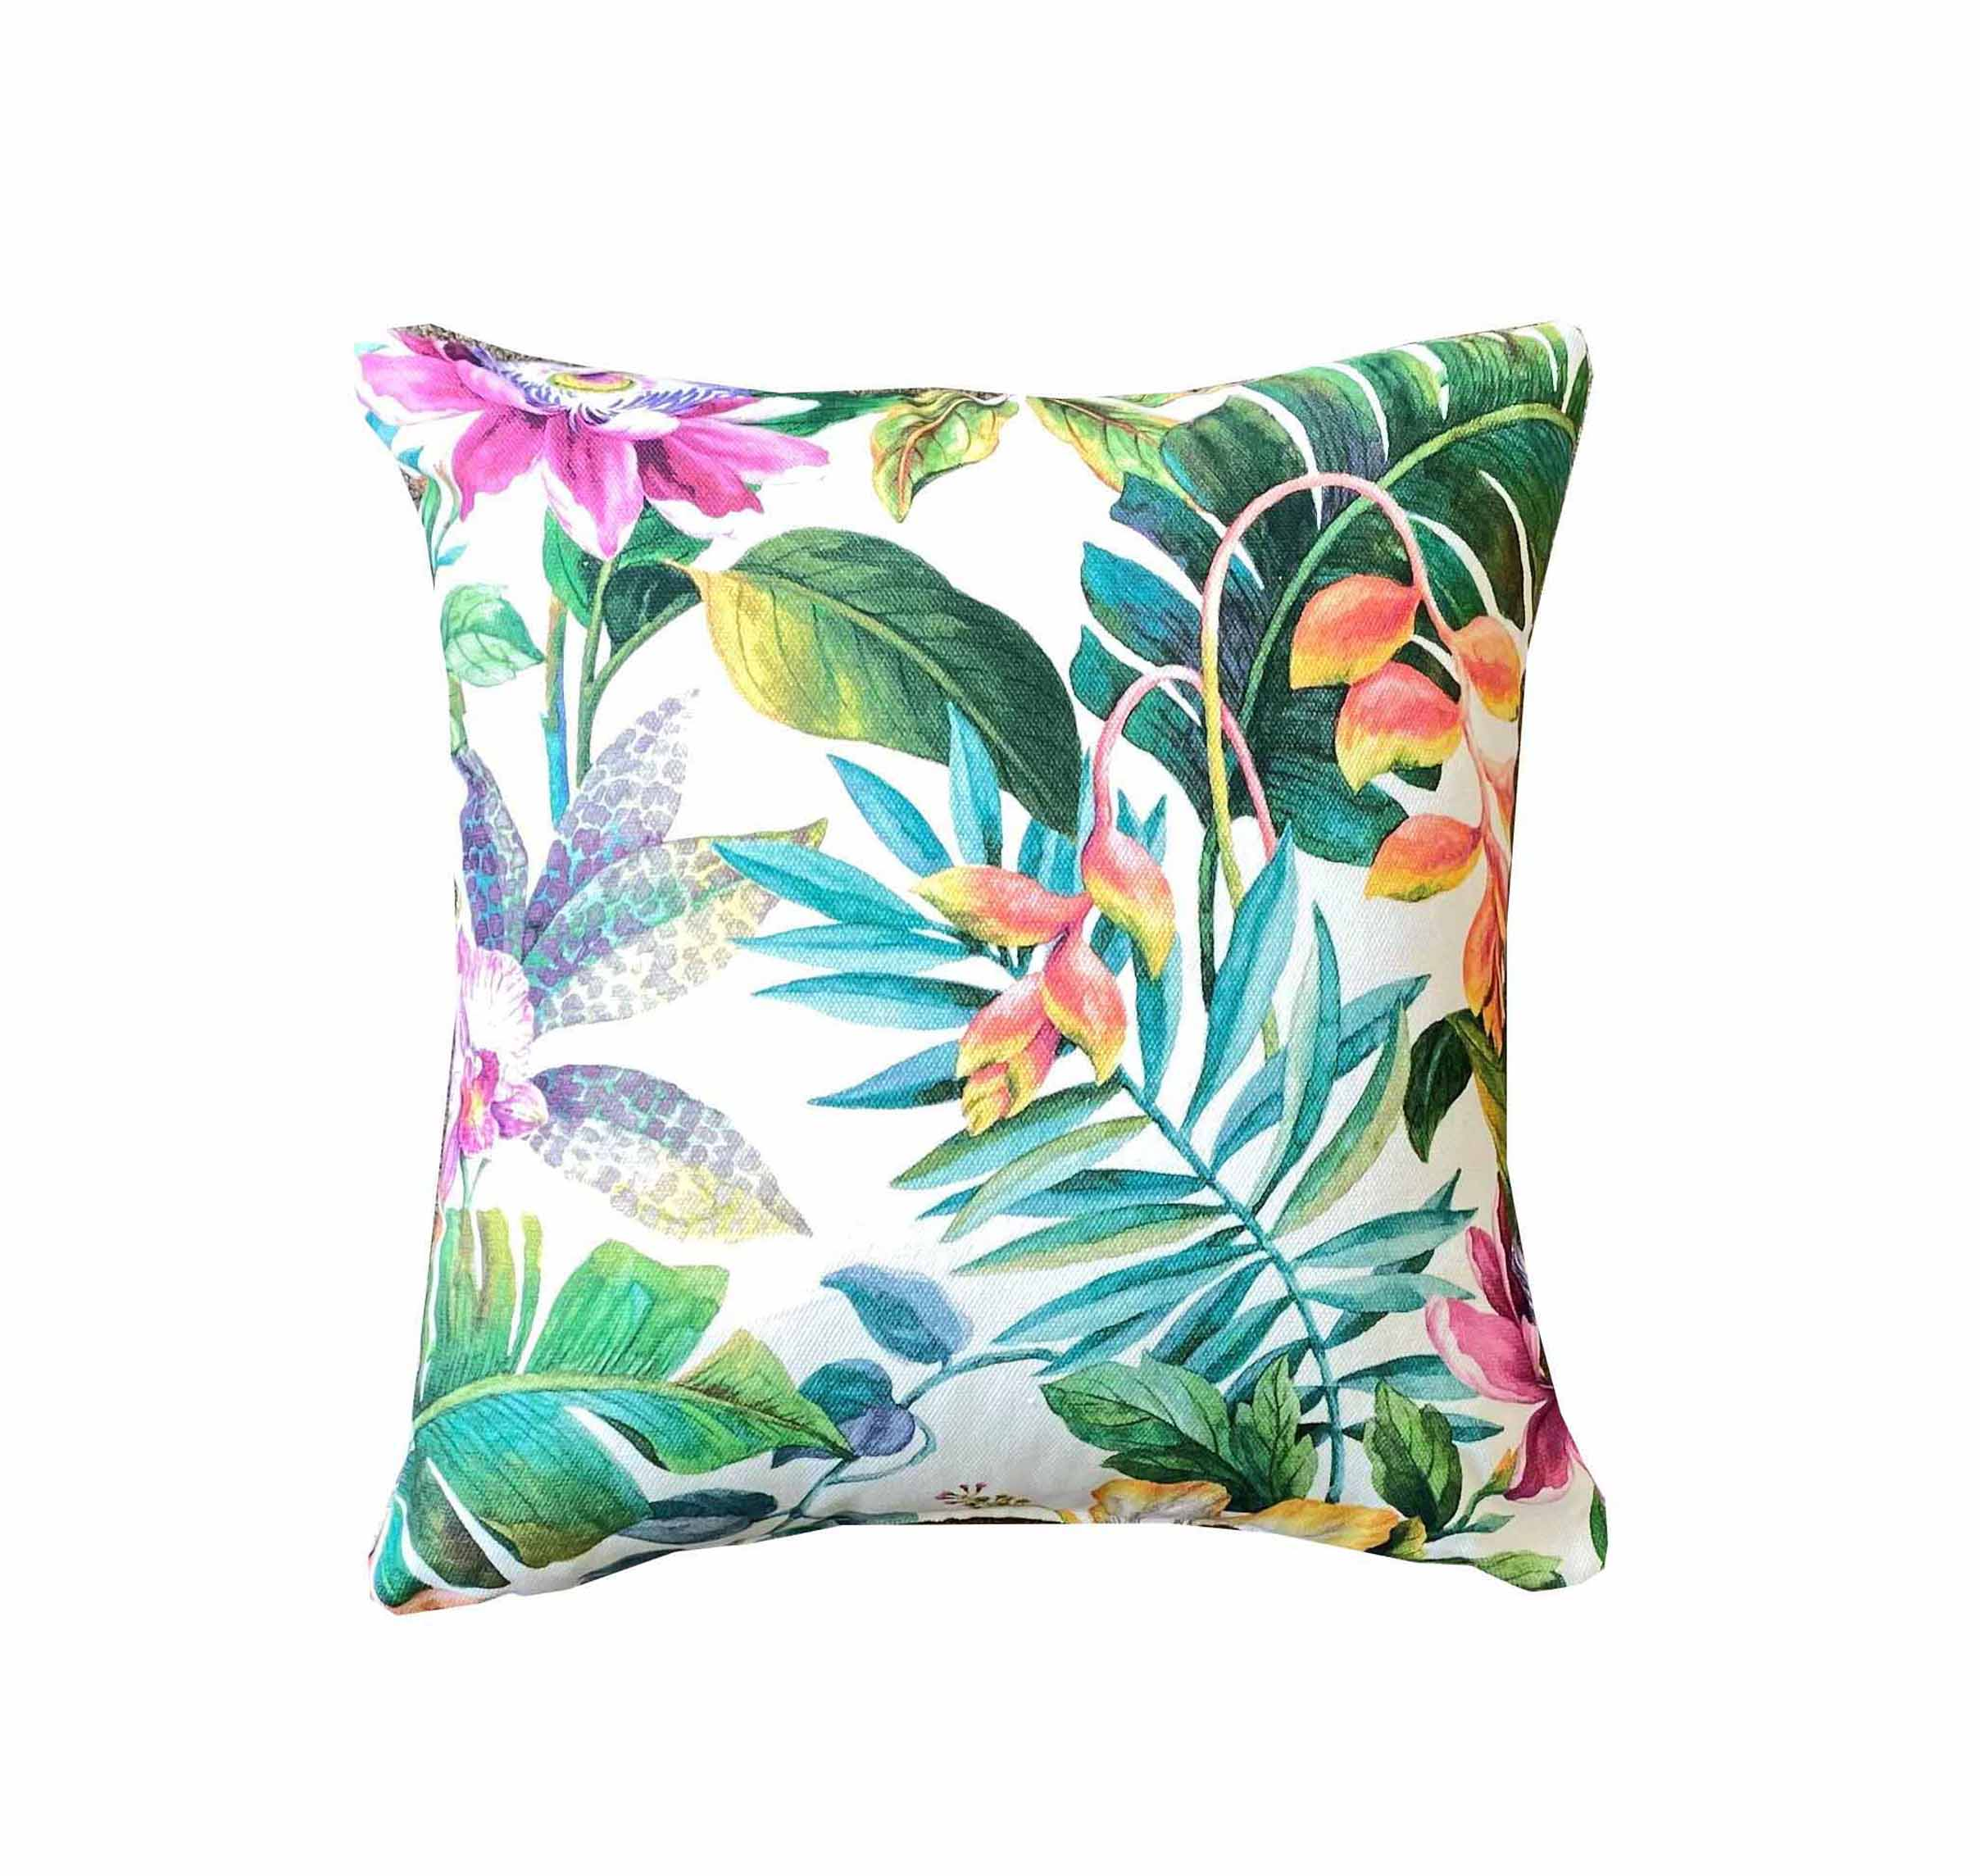 Cushion in Tropical pattern fabric from unique fabrics